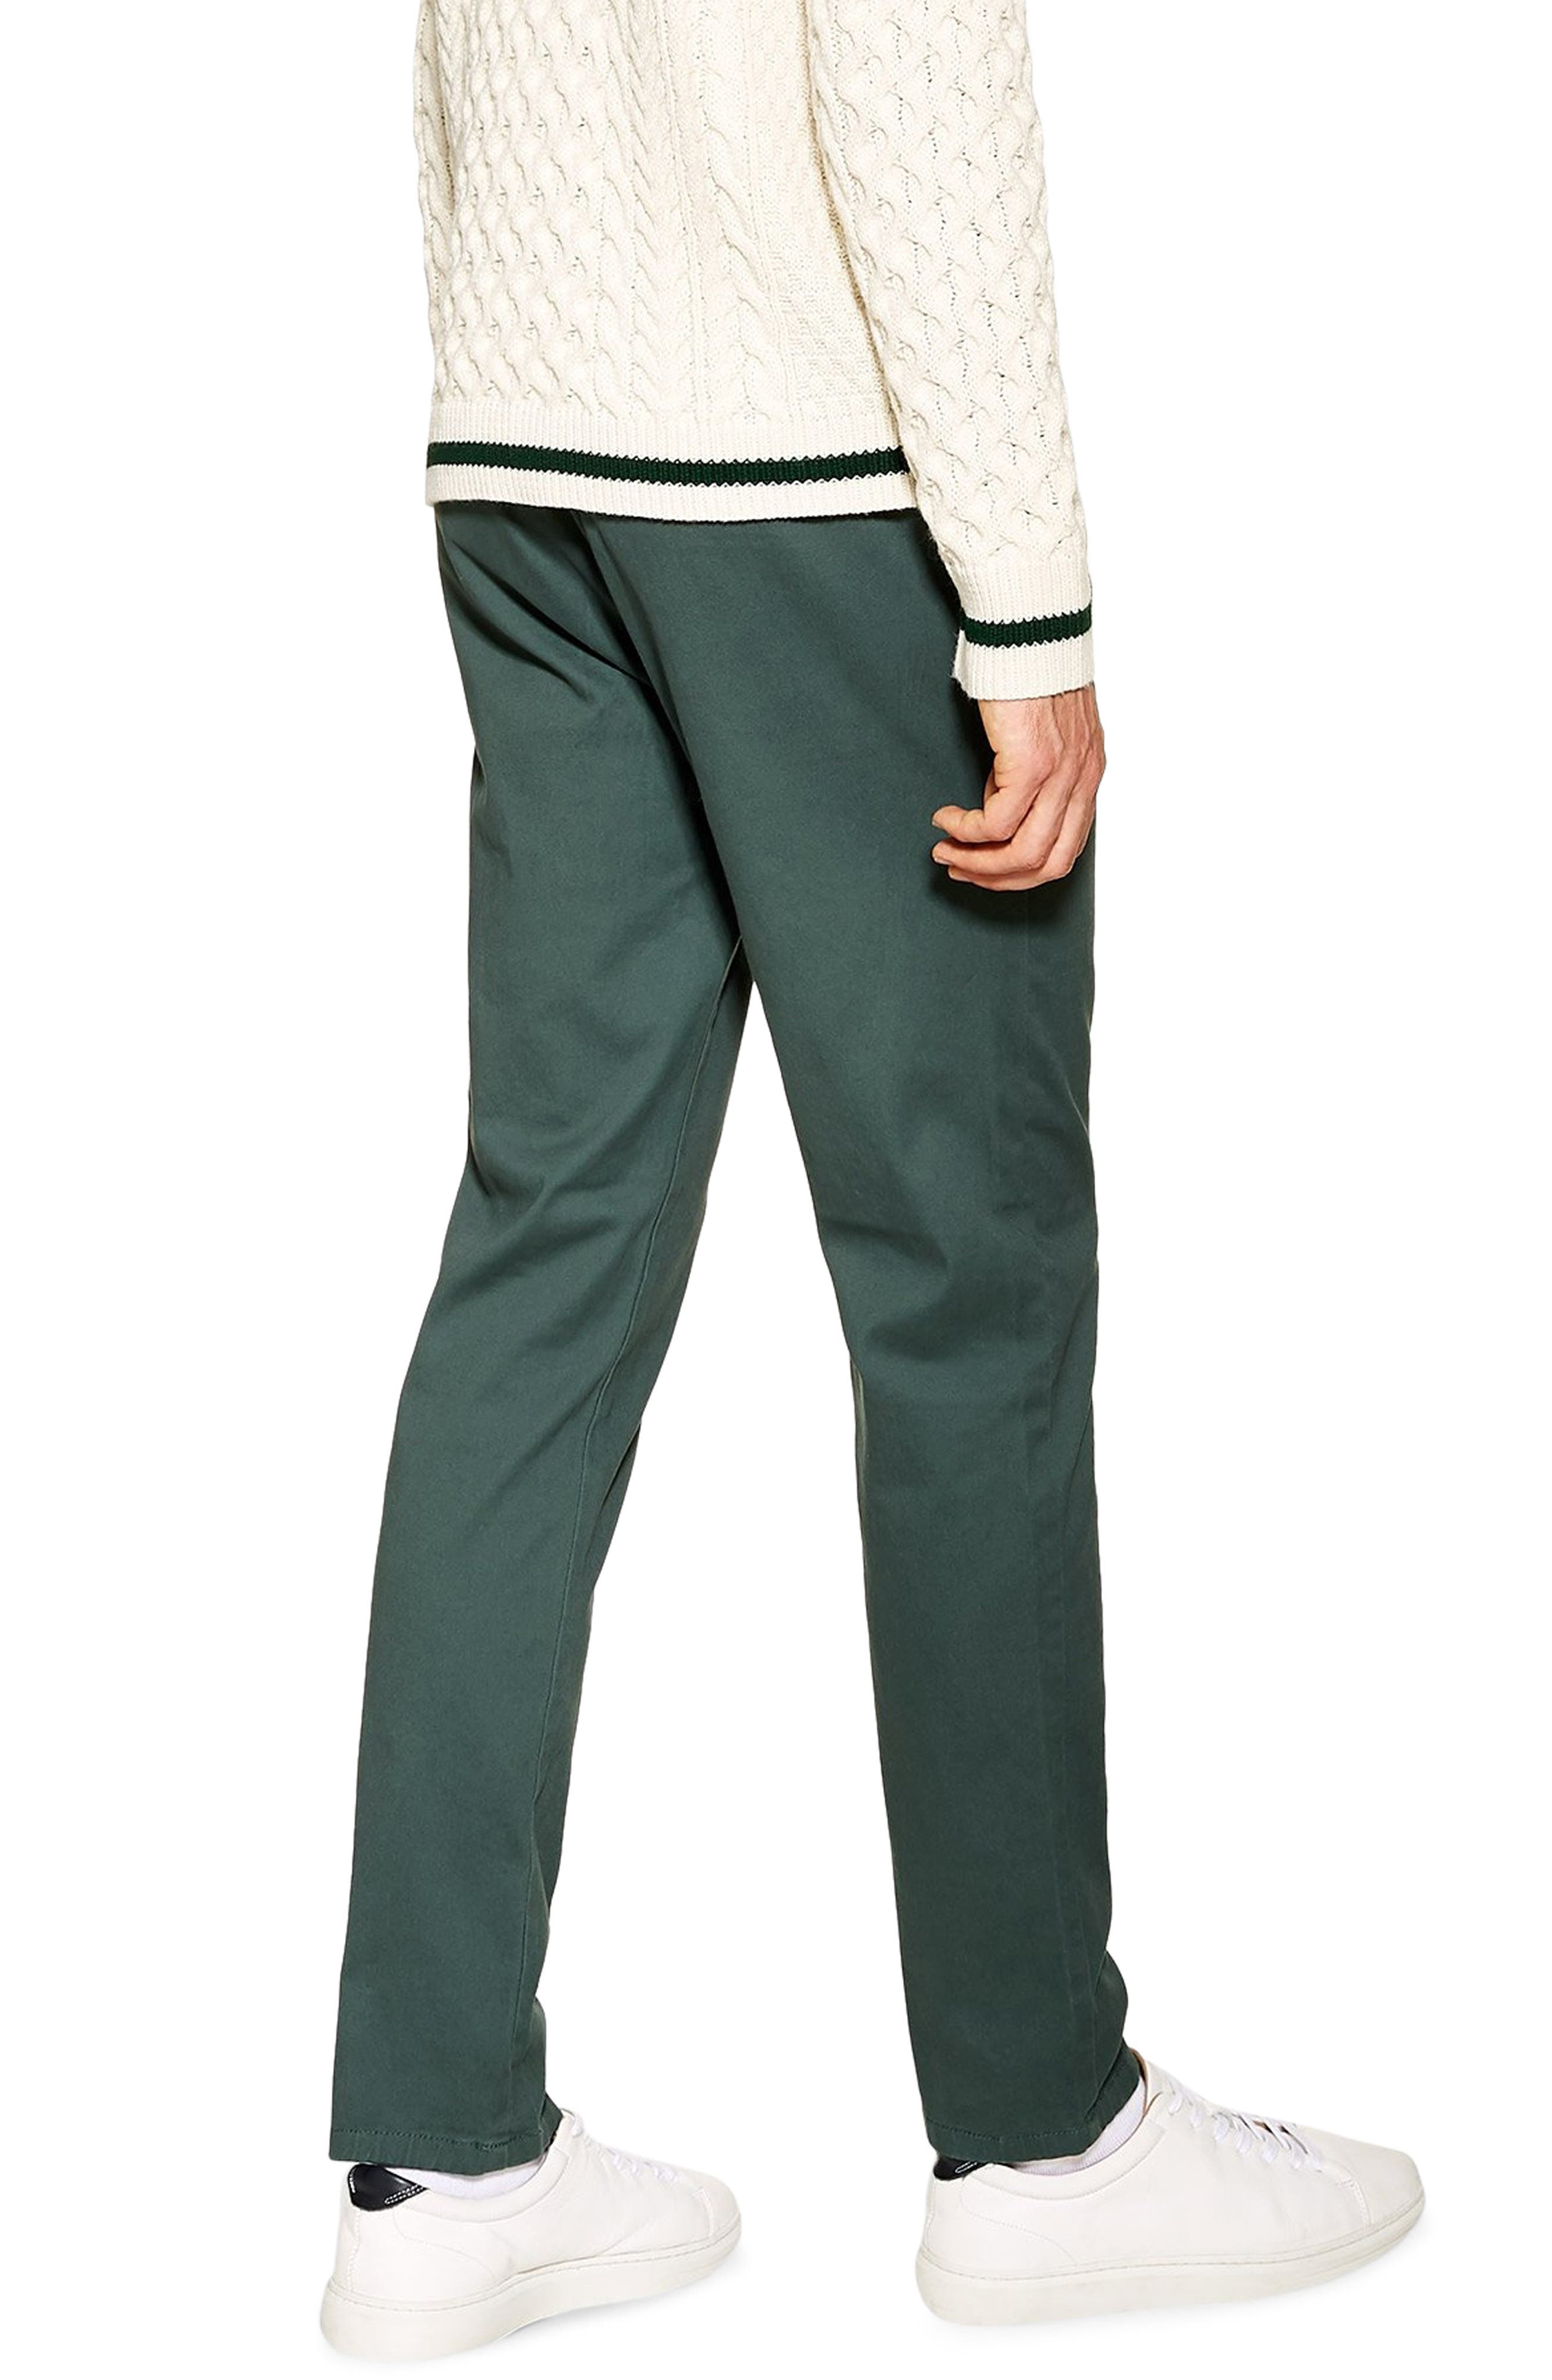 TOPMAN, Stretch Skinny Fit Chinos, Alternate thumbnail 2, color, GREEN